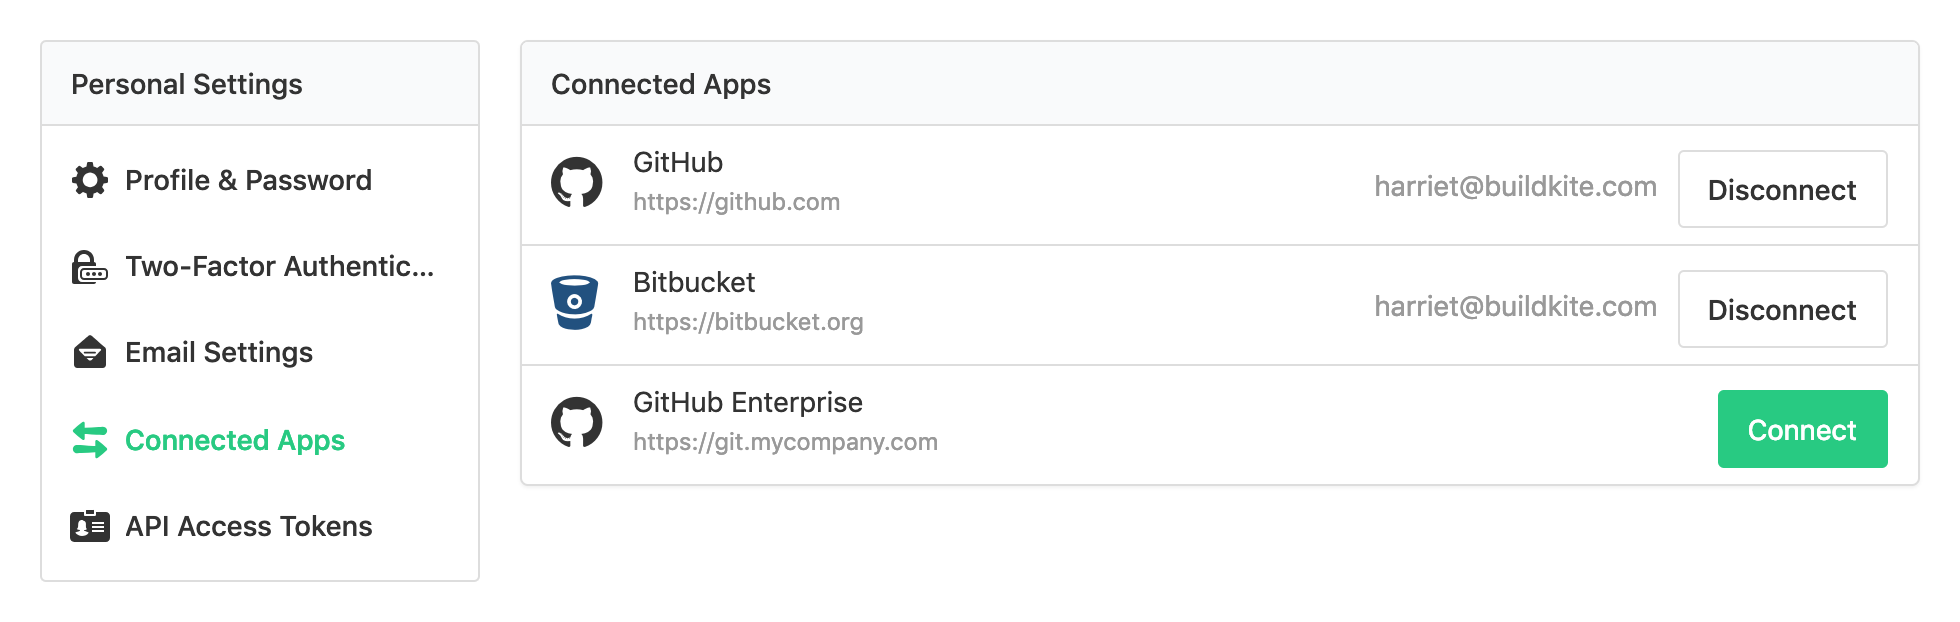 Screenshot of the Connected Apps page in Buildkite Personal Settings with the GitHub Enterprise App